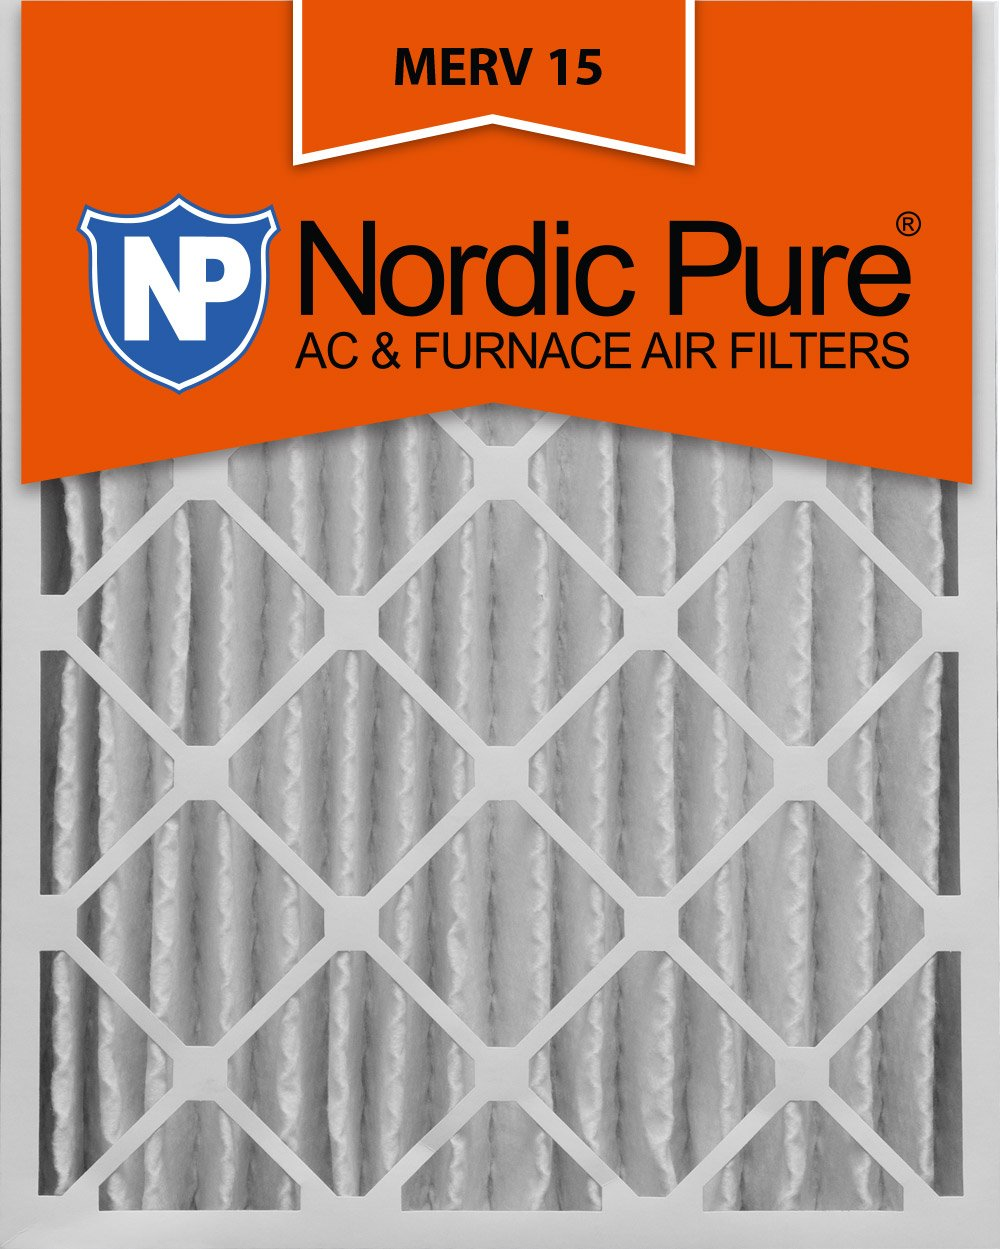 Nordic Pure 18x24x4 MERV 15 Air Condition Furnace Filter, Qty 1